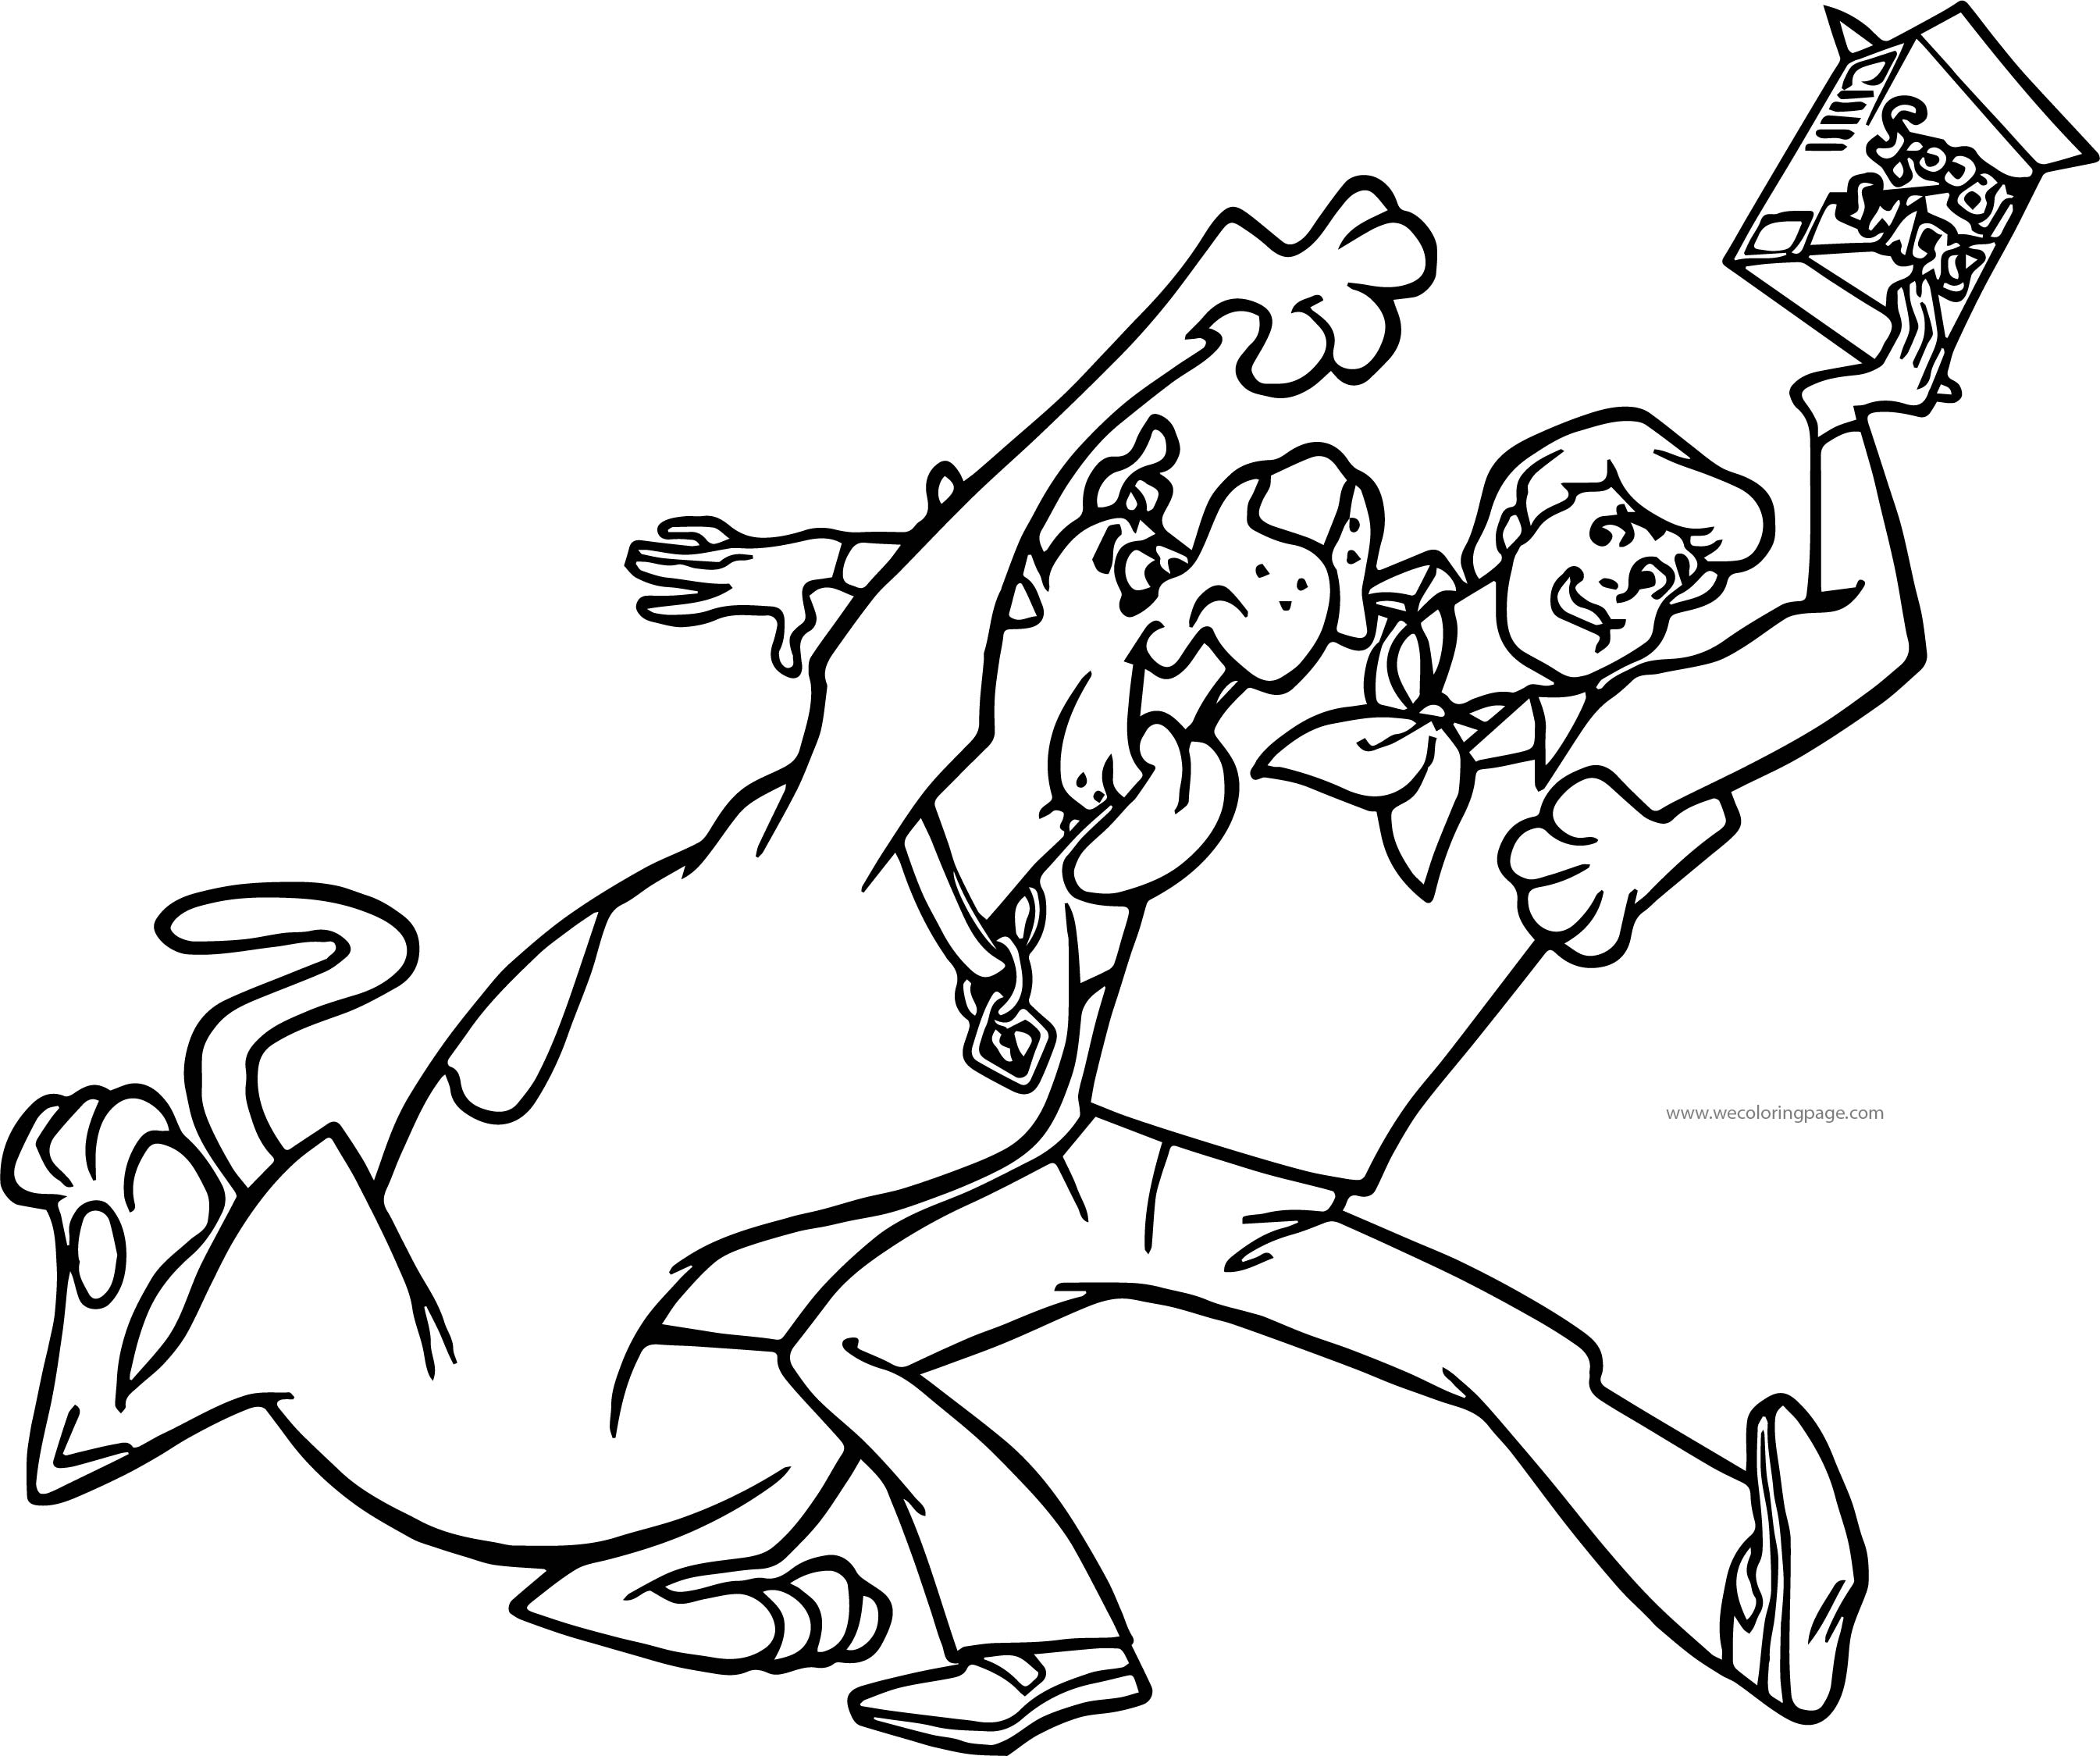 Scooby Doo Snacks Coloring Page